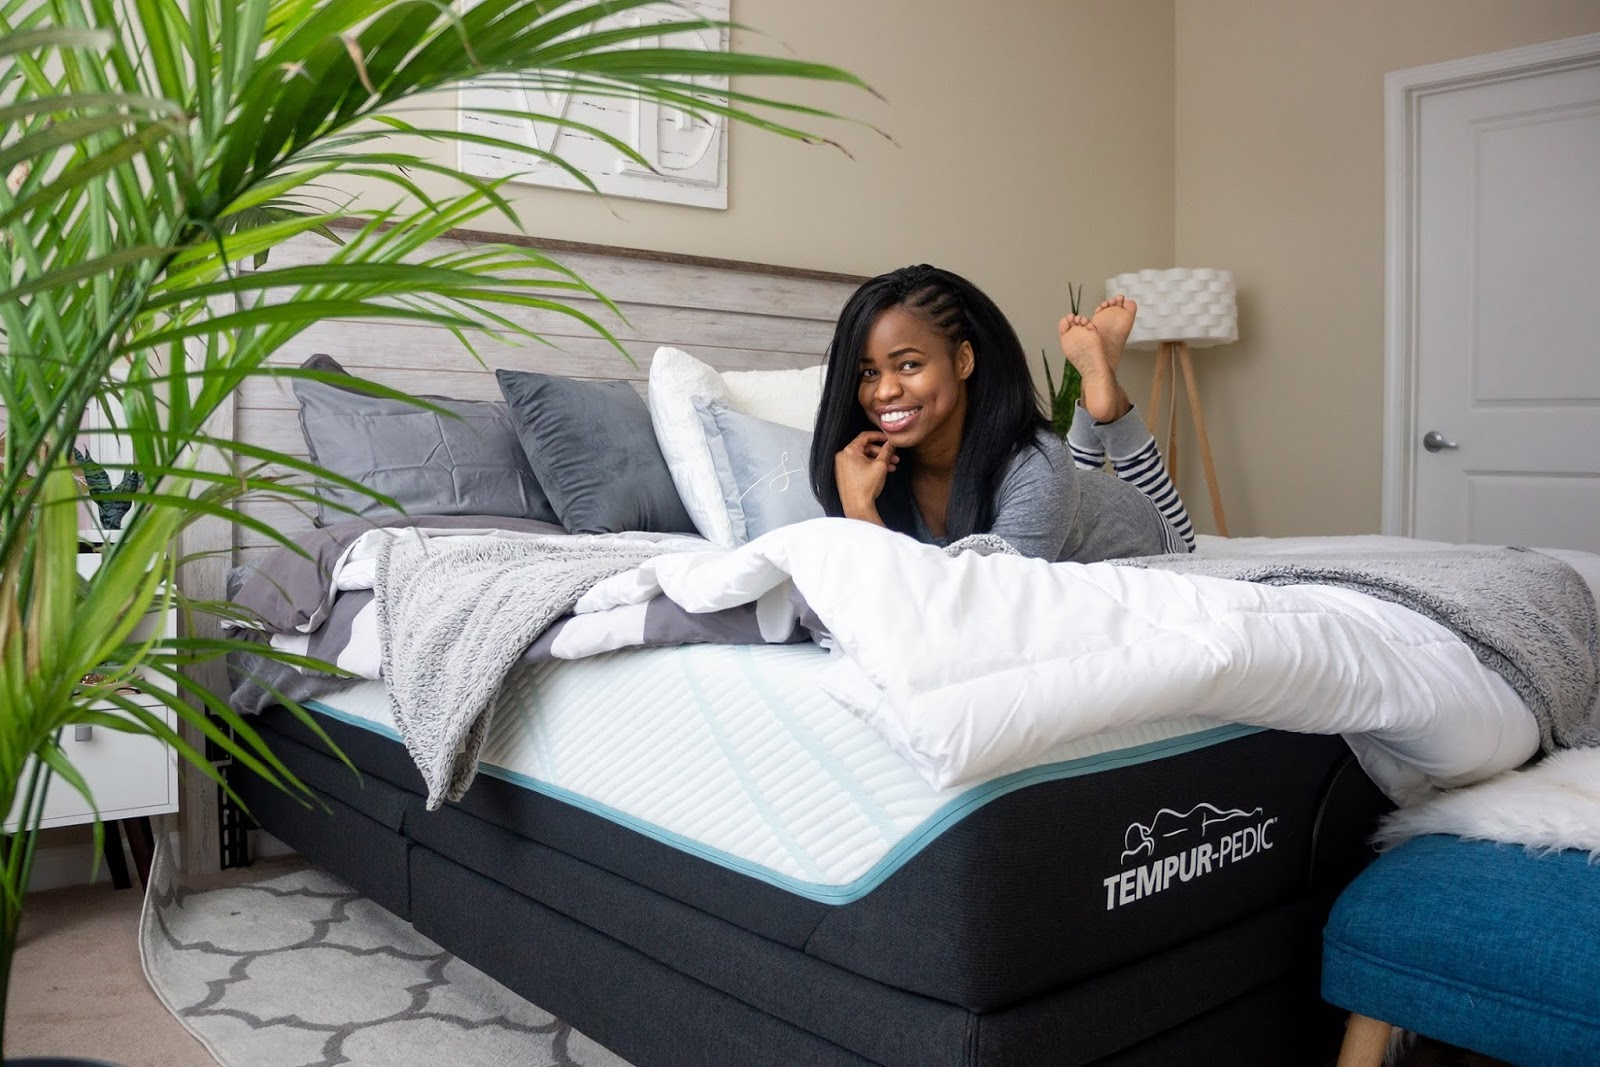 Getting Cozy with Tempur-Pedic